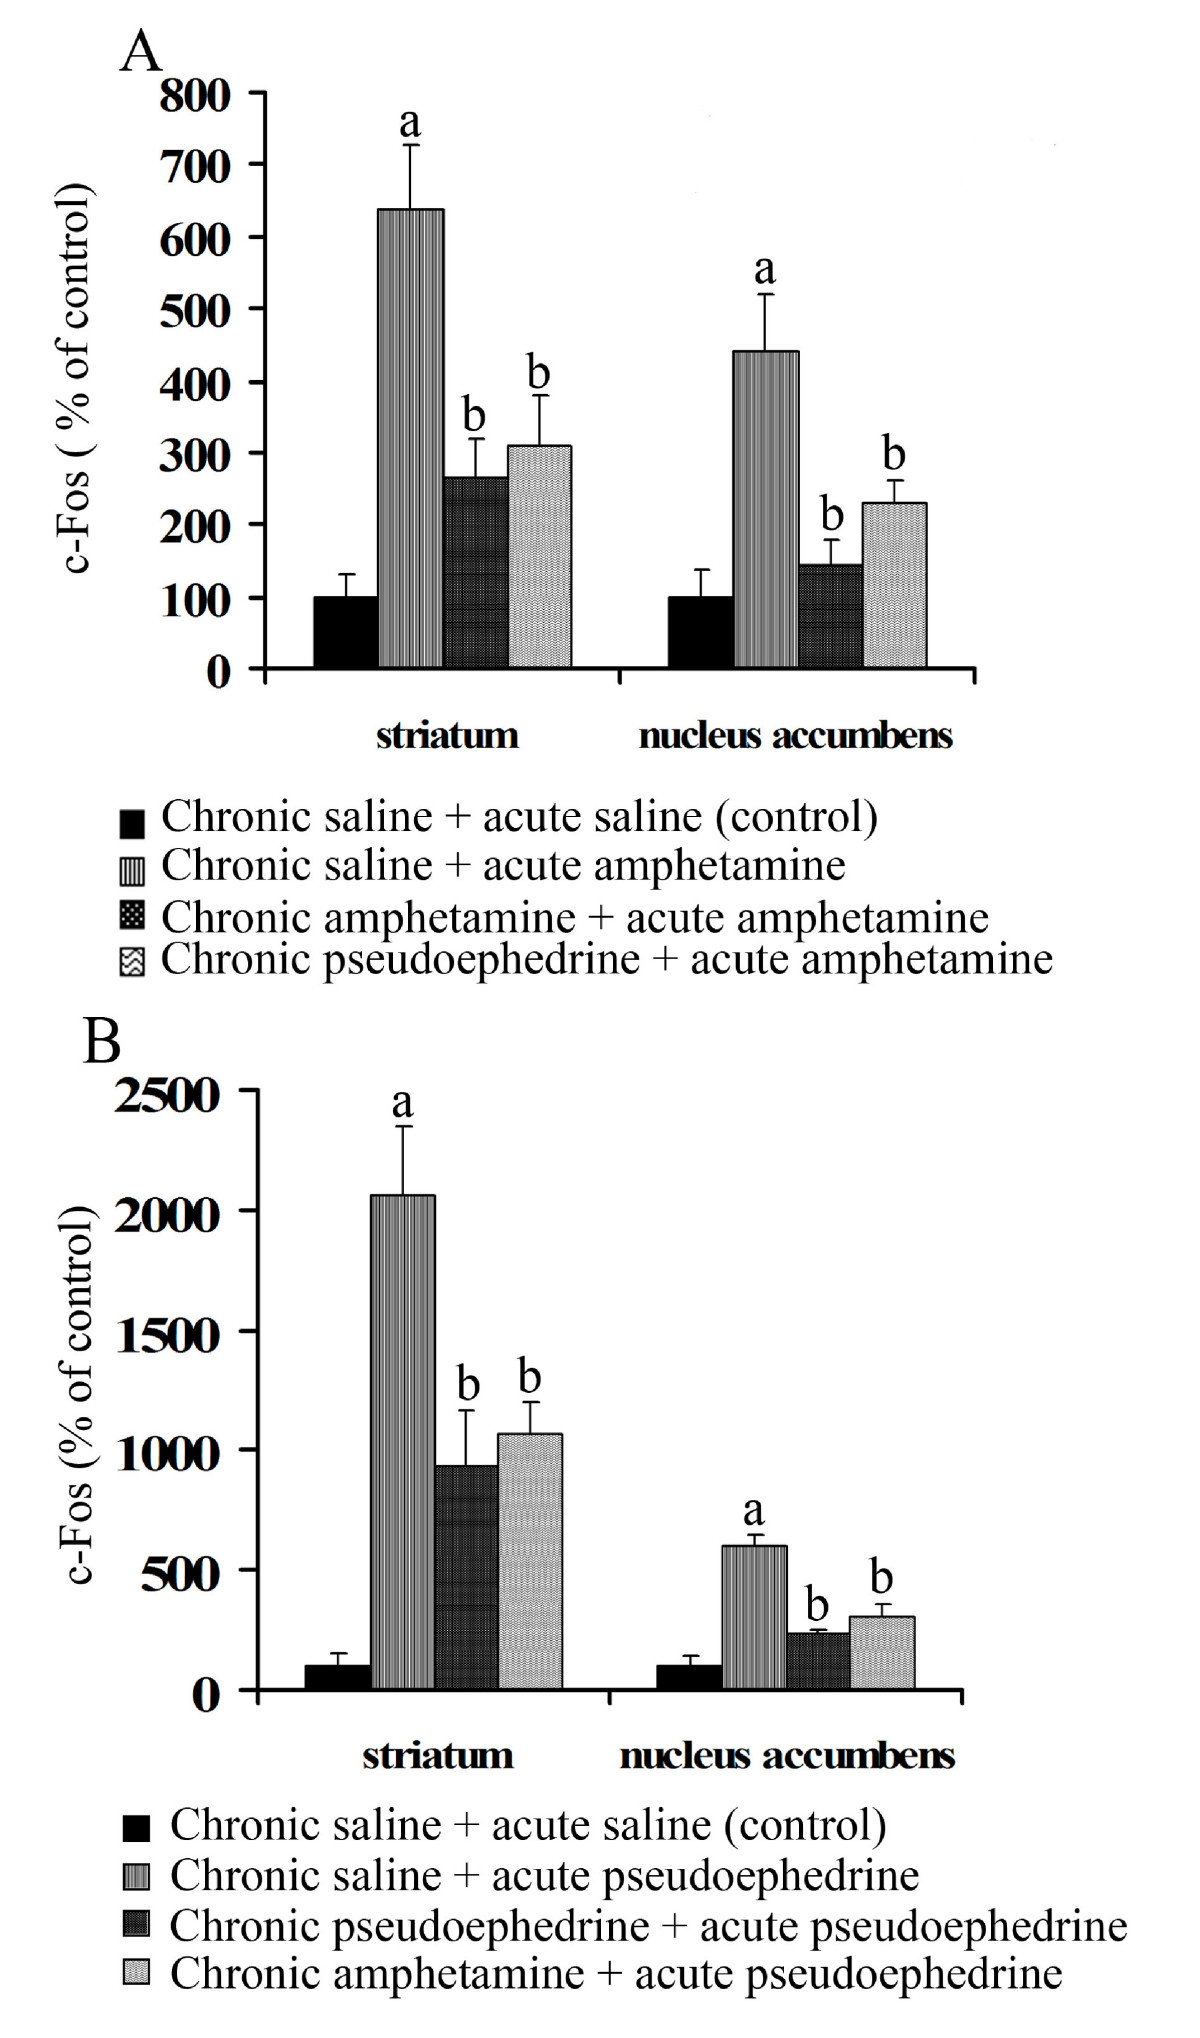 http://static-content.springer.com/image/art%3A10.1186%2F1471-2202-9-99/MediaObjects/12868_2008_Article_782_Fig3_HTML.jpg